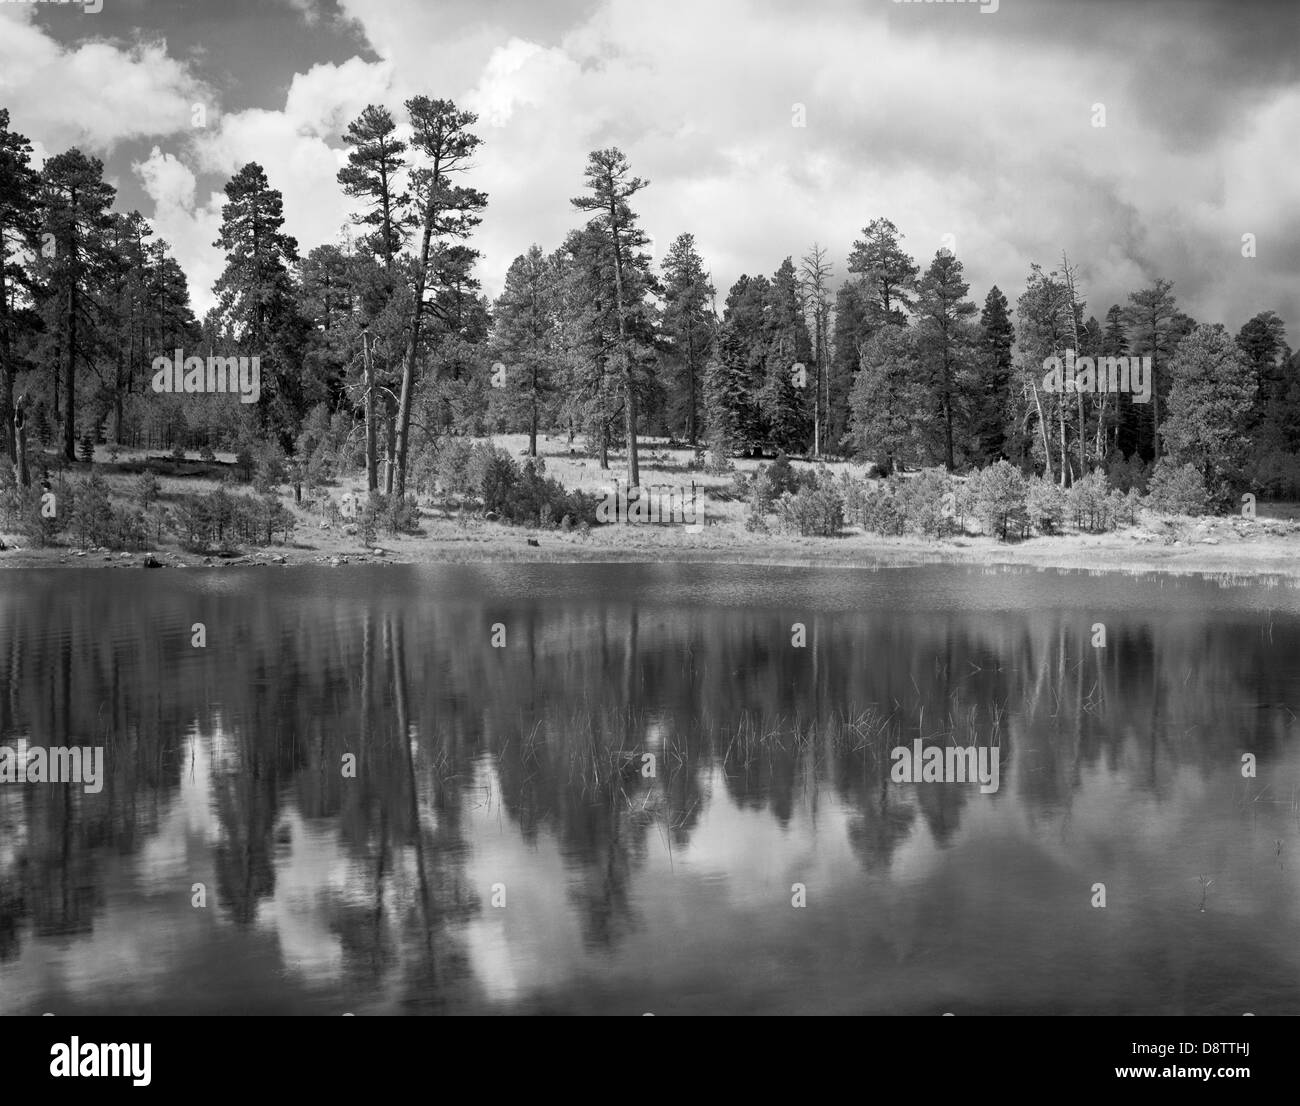 A relaxing scenic with a reflection of the pine tree line in the still water of Shultz Tank just outside of Flagstaff, - Stock Image